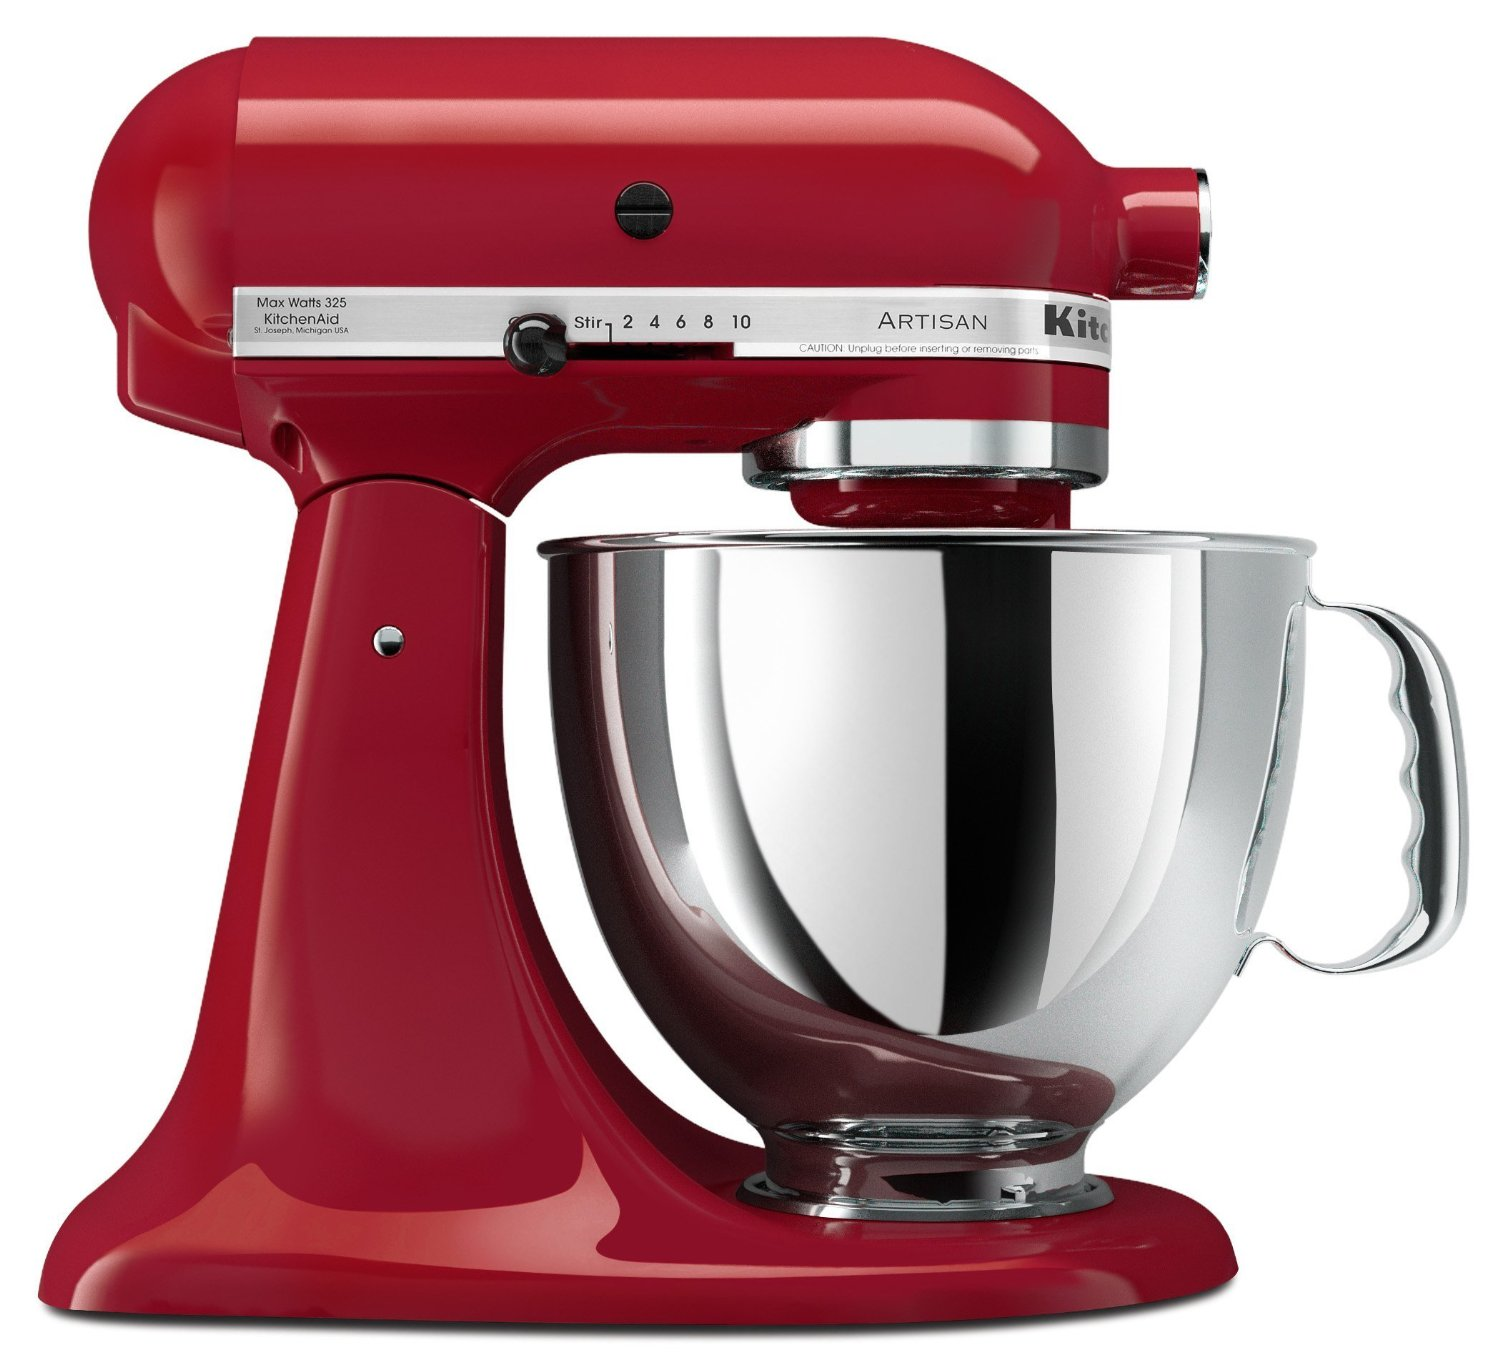 i love my kitchenaid mixer - Kitchenaid Mixer Best Price